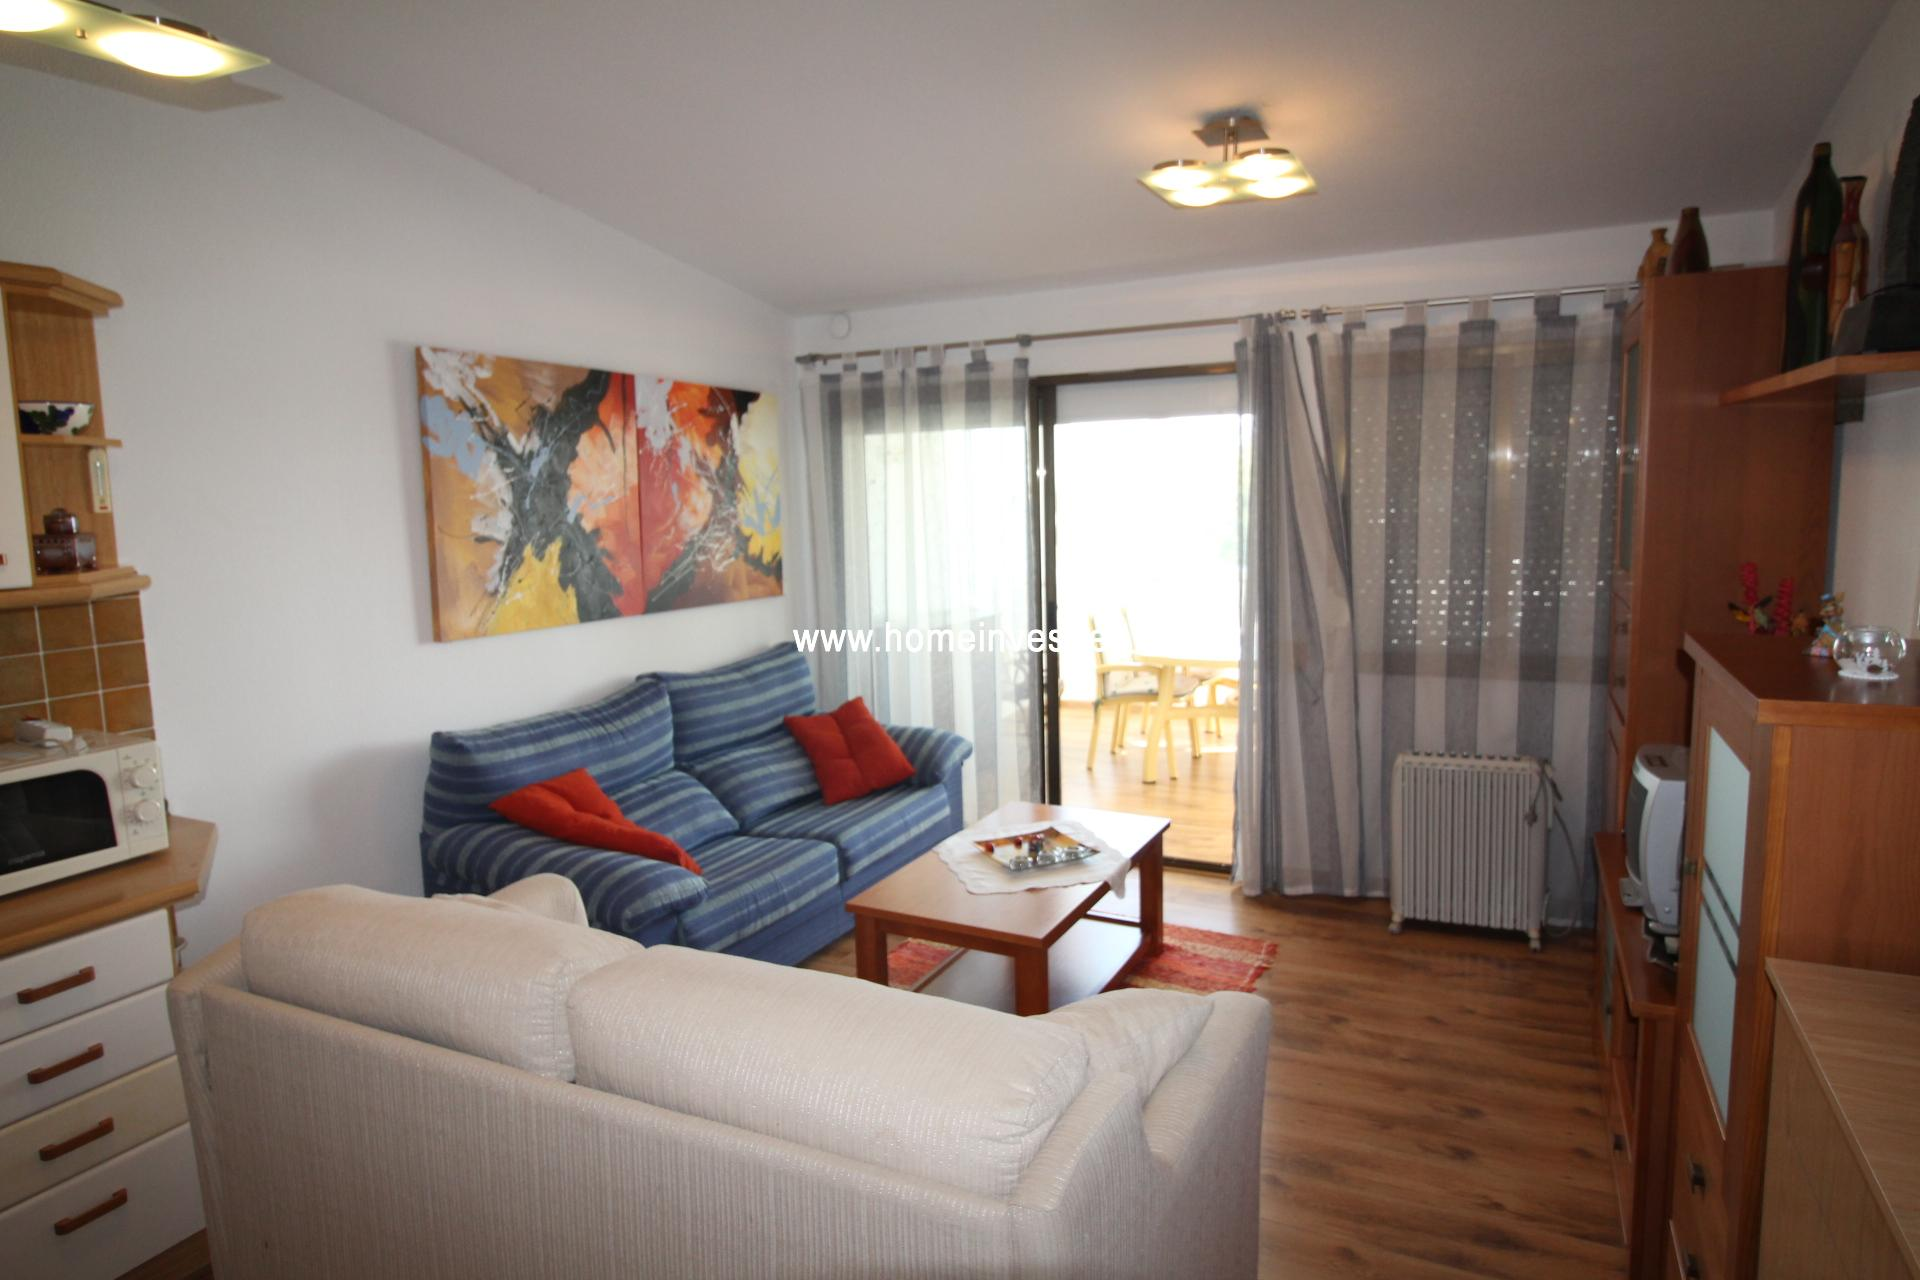 APARTMENT IN LA NUCIA